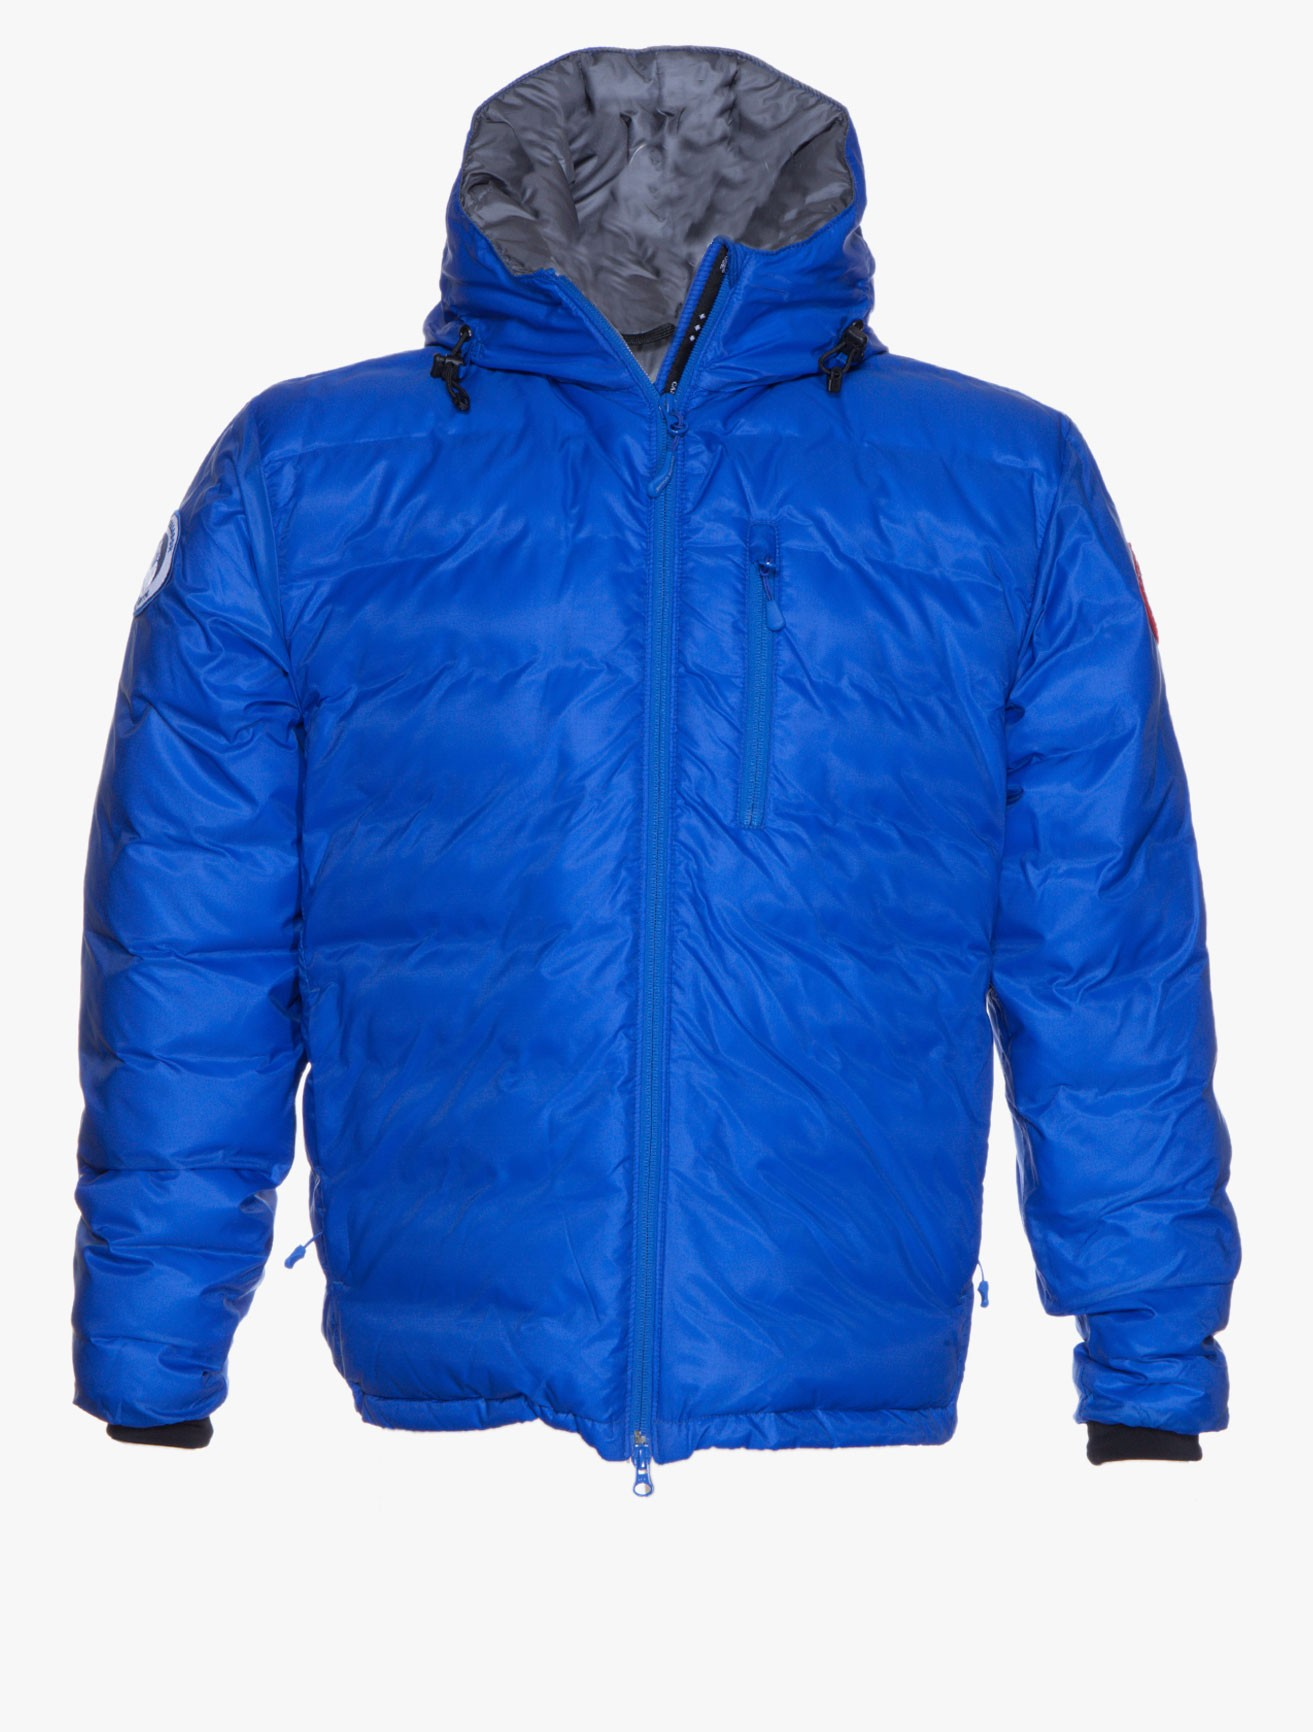 Canada Goose coats sale cheap - Canada goose Pbi Lodge Hoody in Blue for Men (ROYAL BLUE) | Lyst